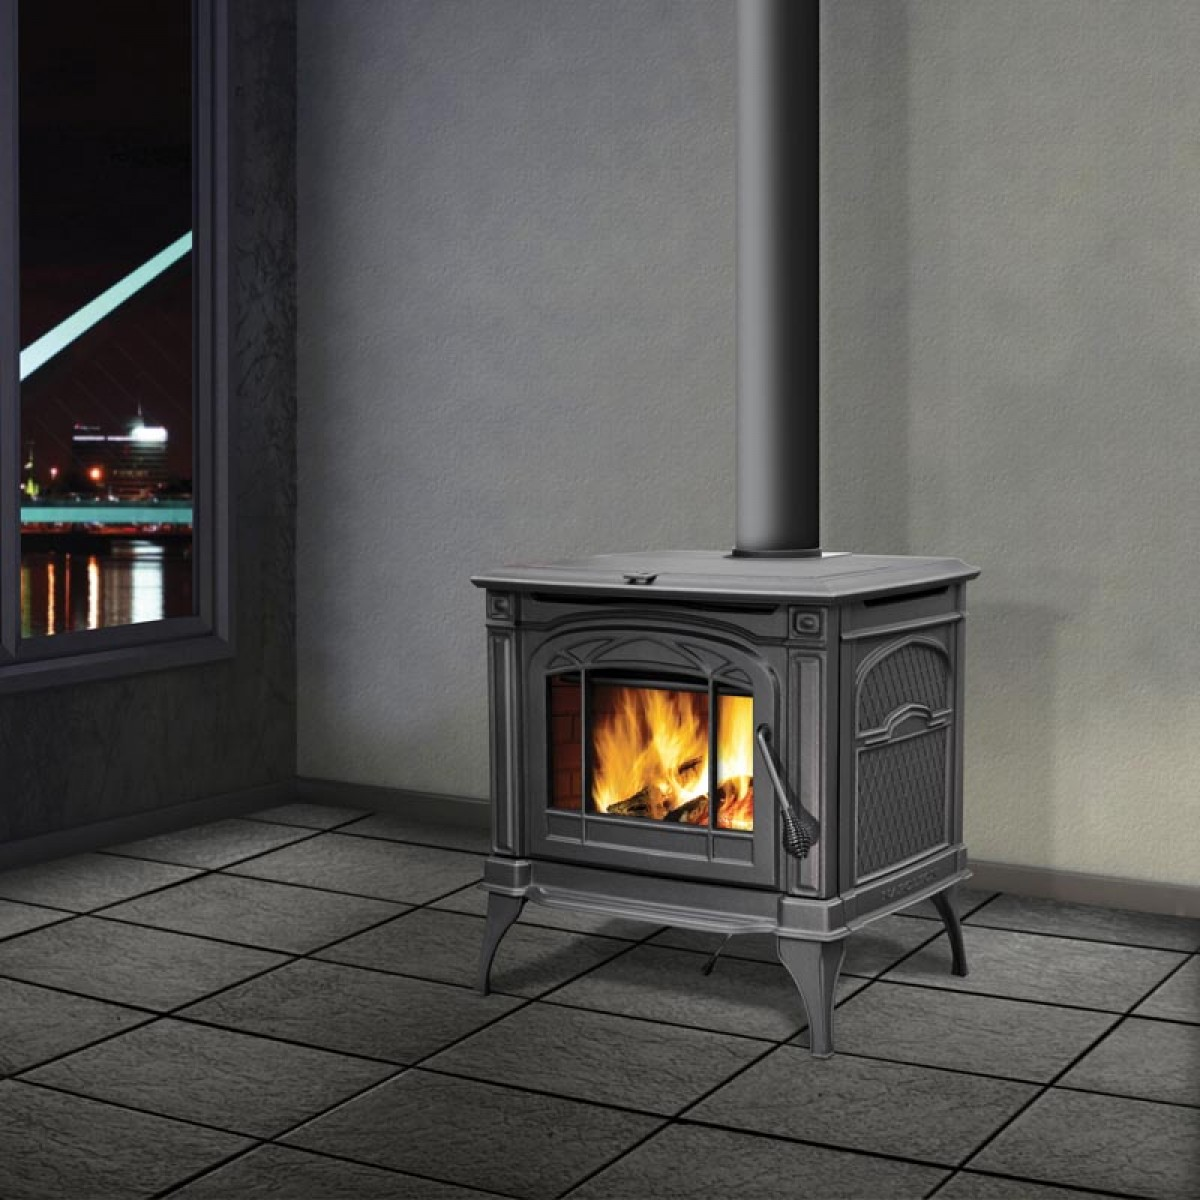 Napoleon 1400cp Cast Iron Wood Burning Stove Metallic